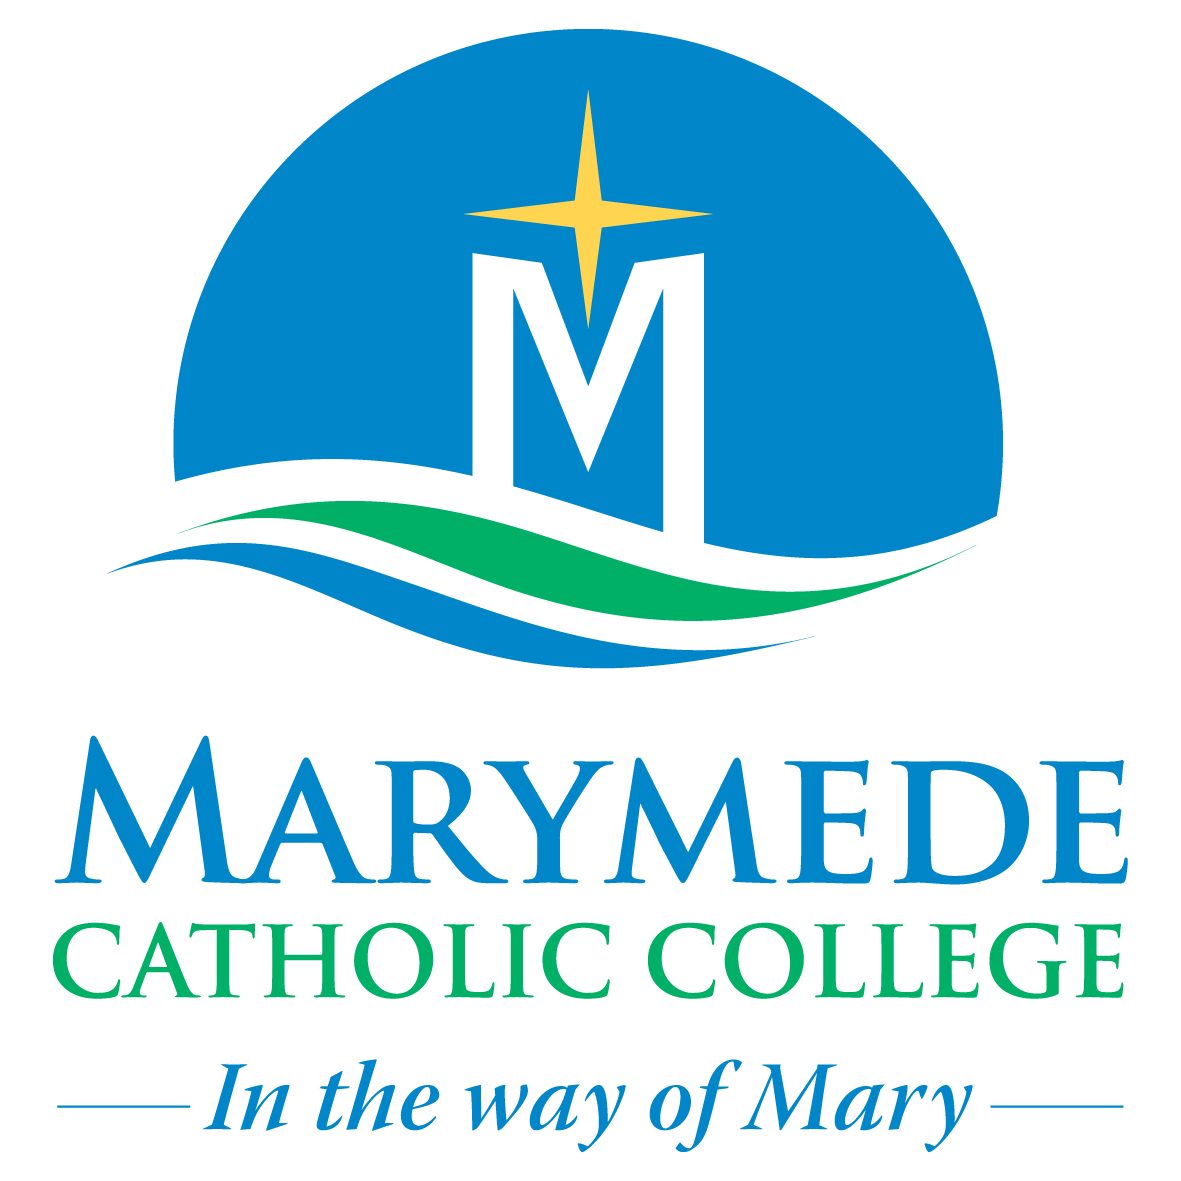 eltham college good schools guide marymede catholic college